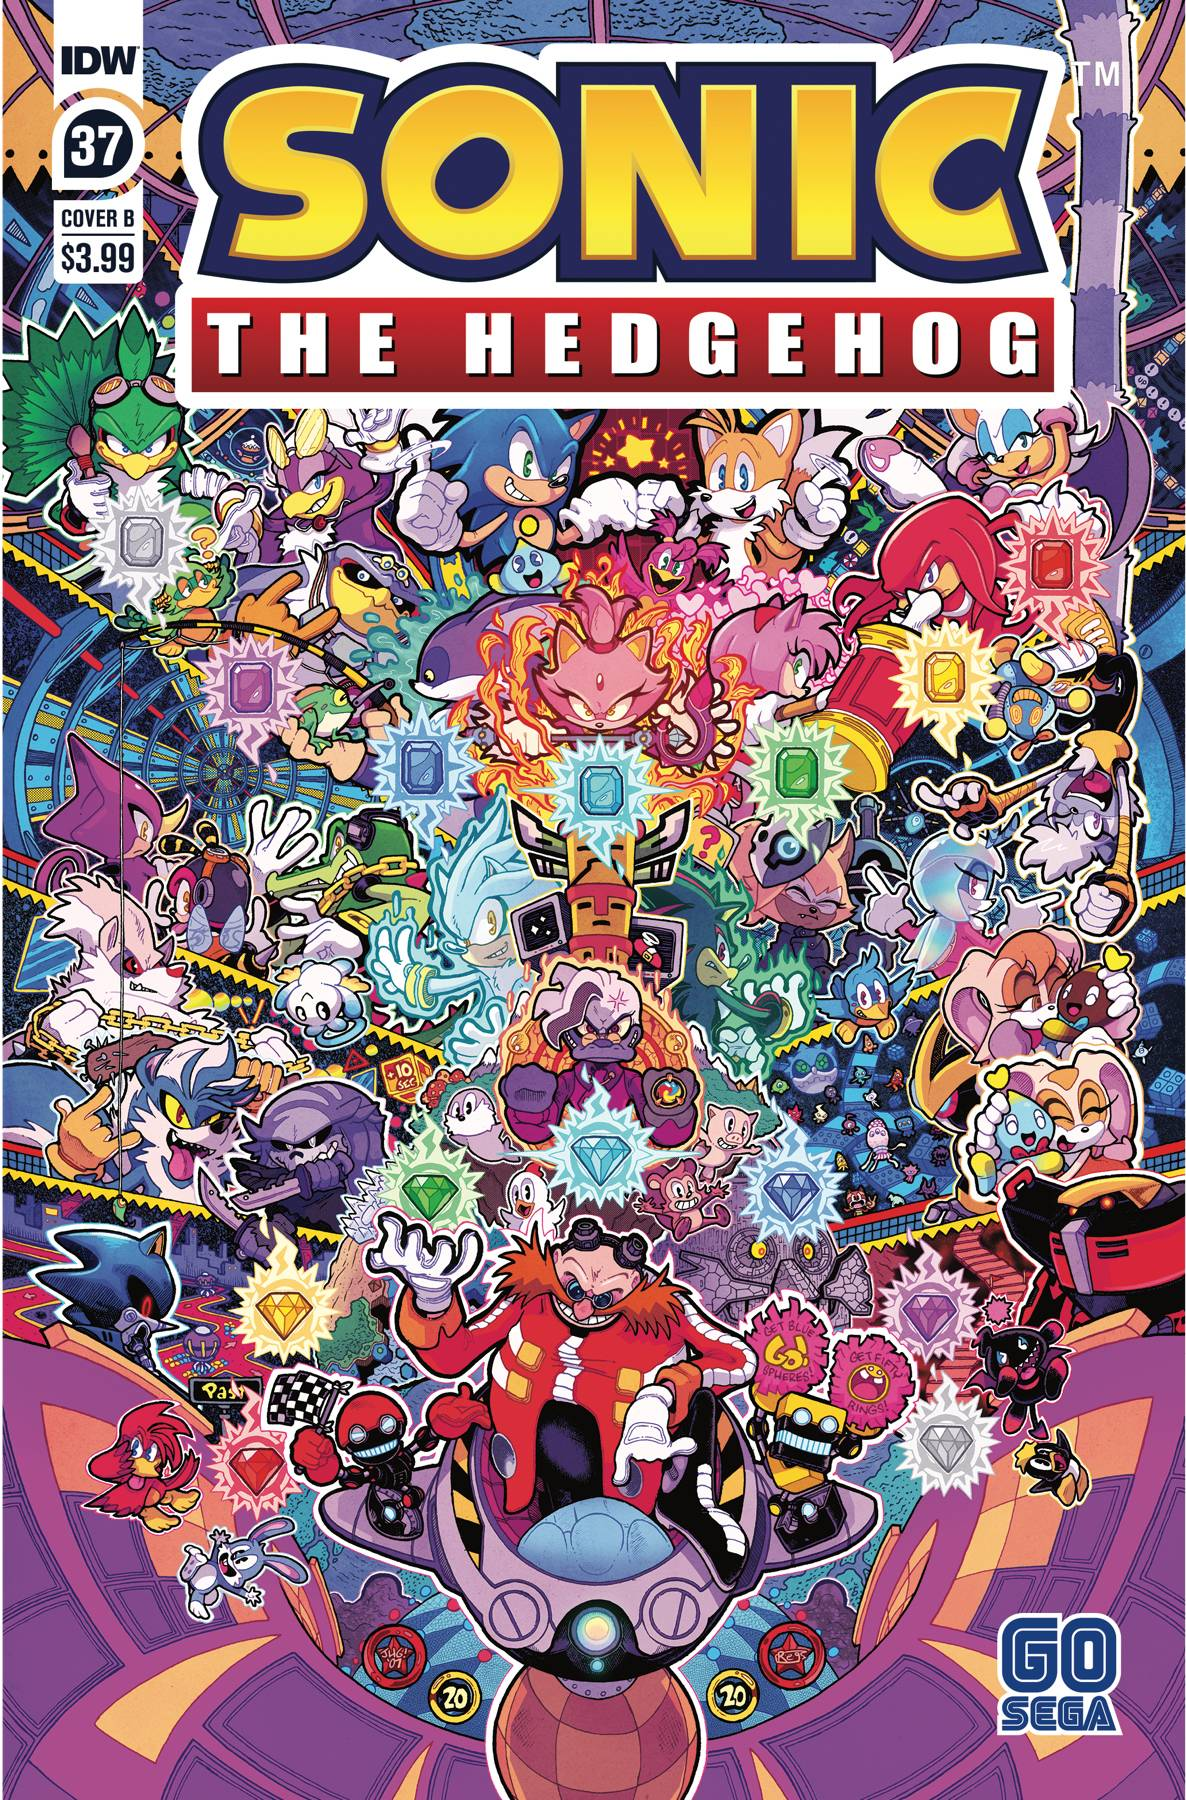 SONIC THE HEDGEHOG #37 CVR B JON GRAY